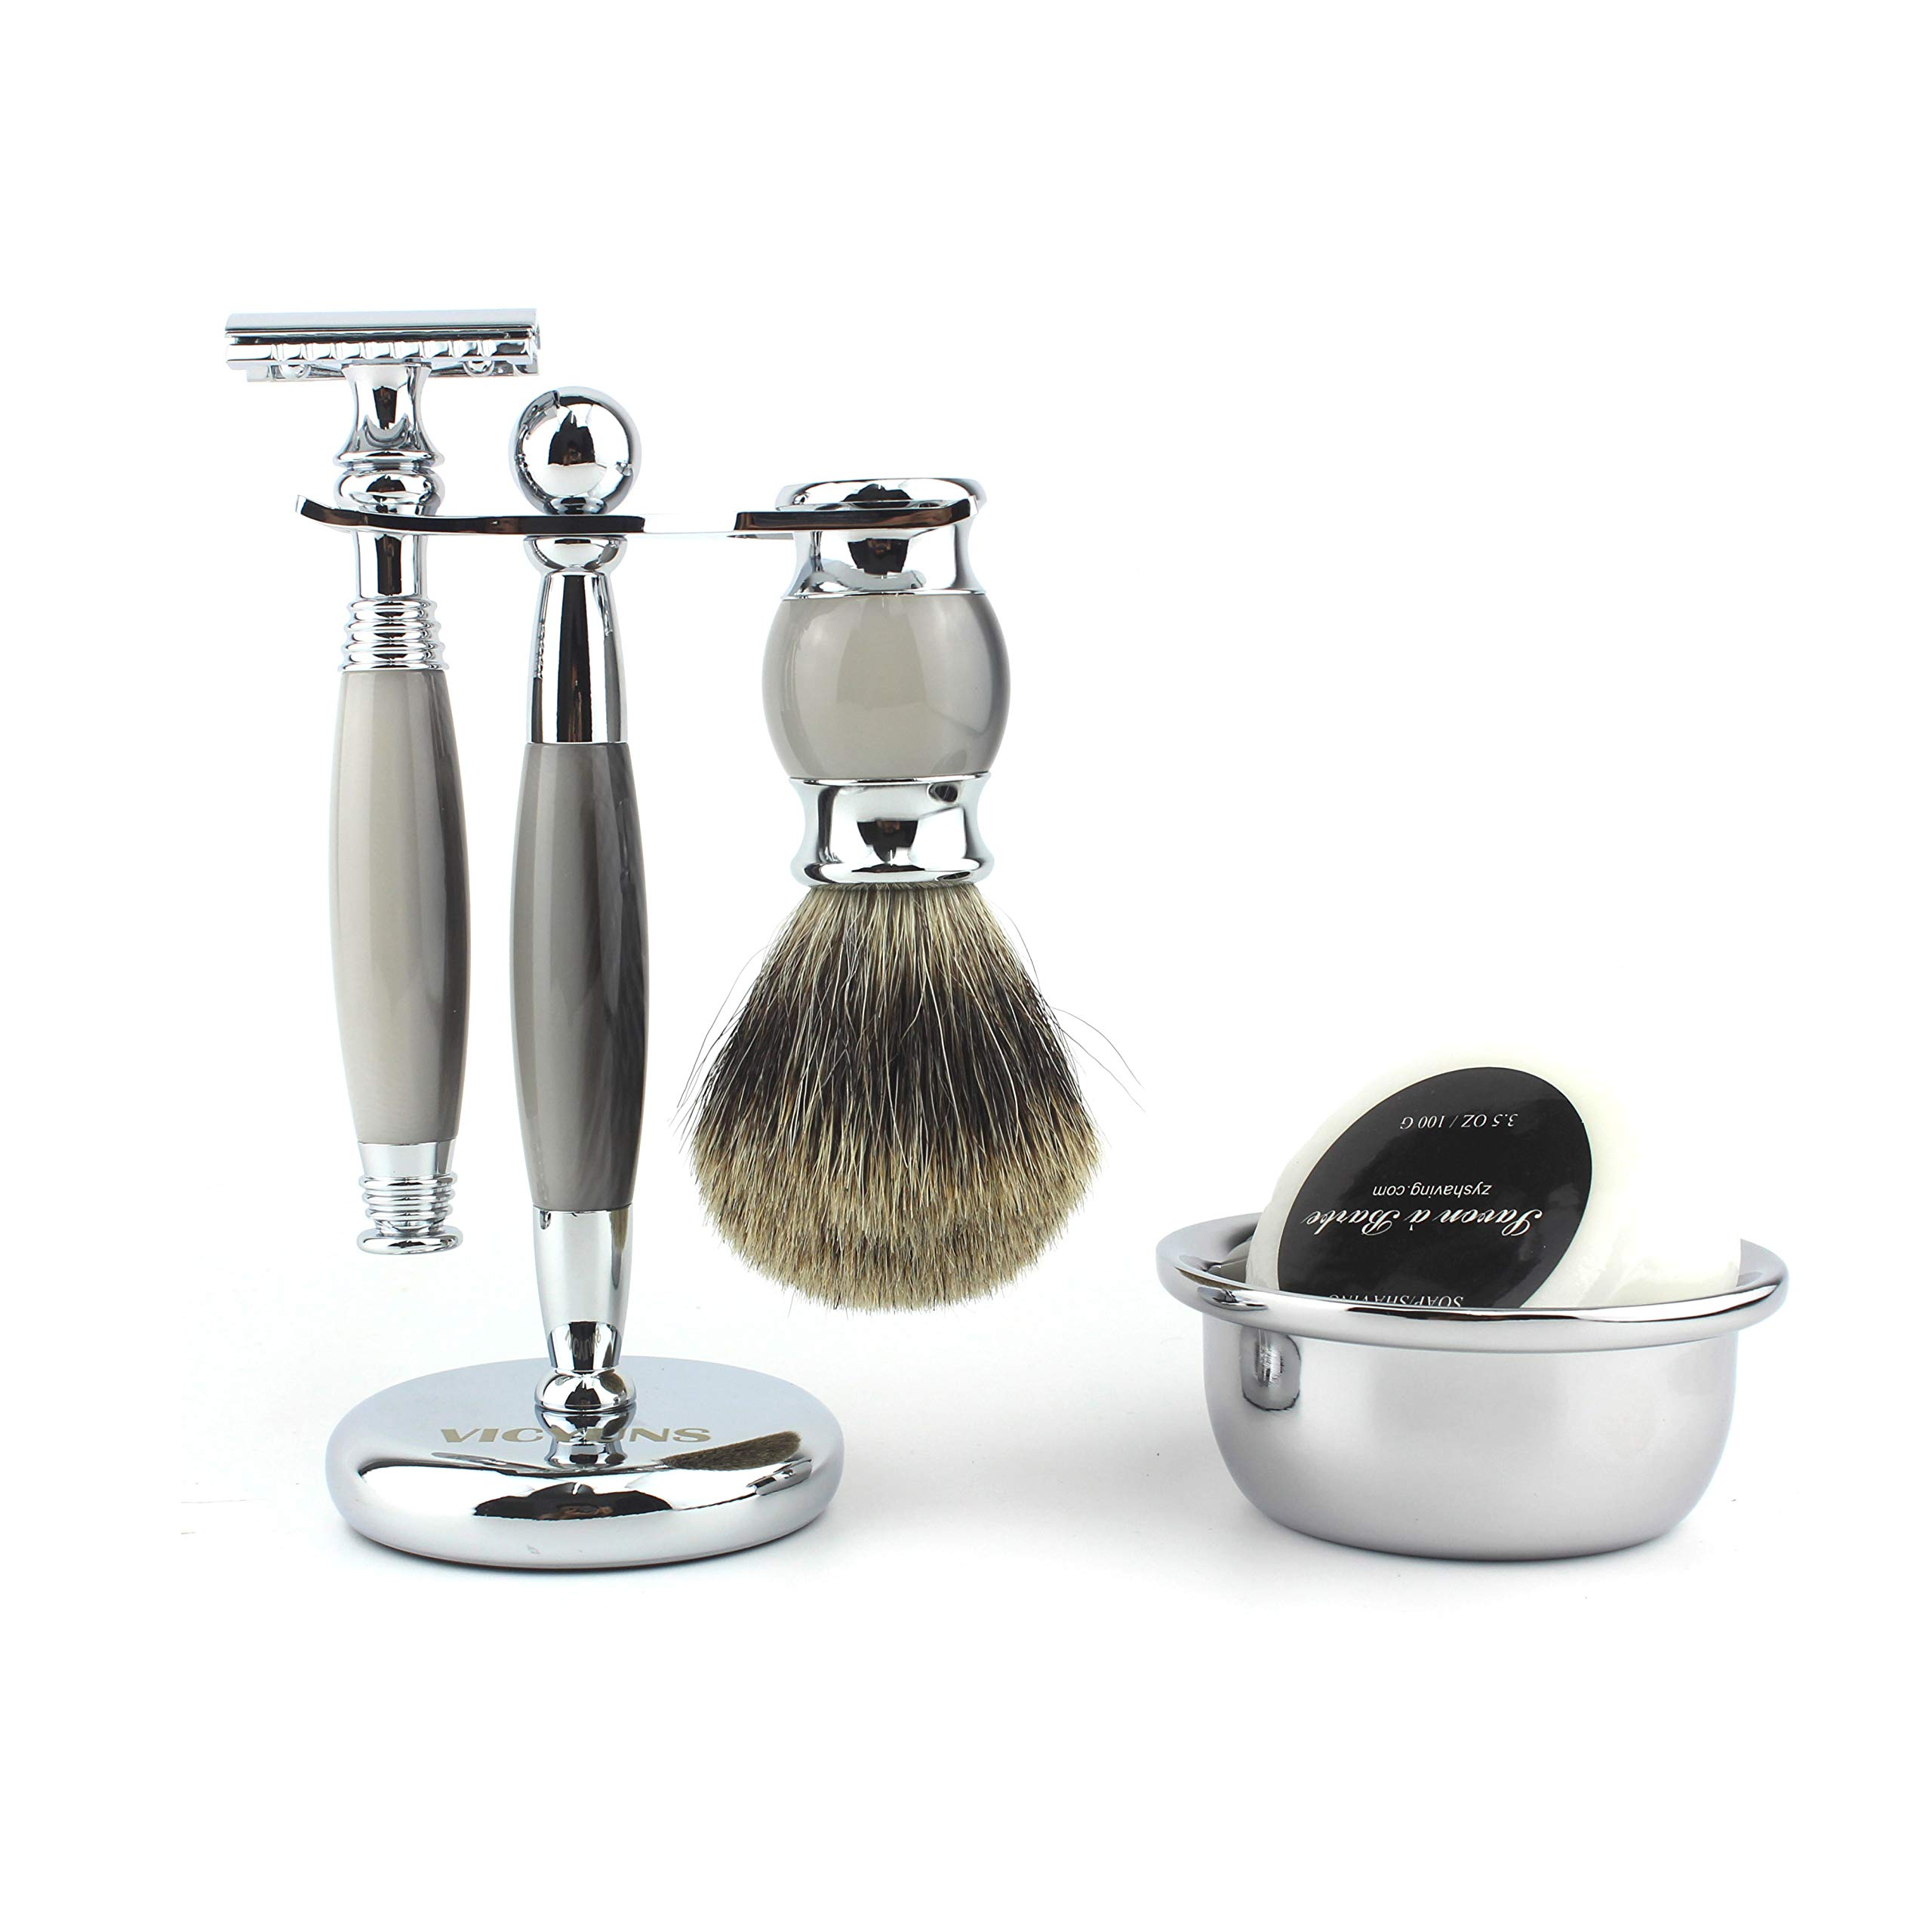 VICYUNS Luxury Grooming Shaving Set for Men Including Double-sided Razor, Allergy Shaving Soap, Stainless Steel Mirror Bowl, Hair Shaving Brush,10 Replacement Blades (Gray) by VICYUNS